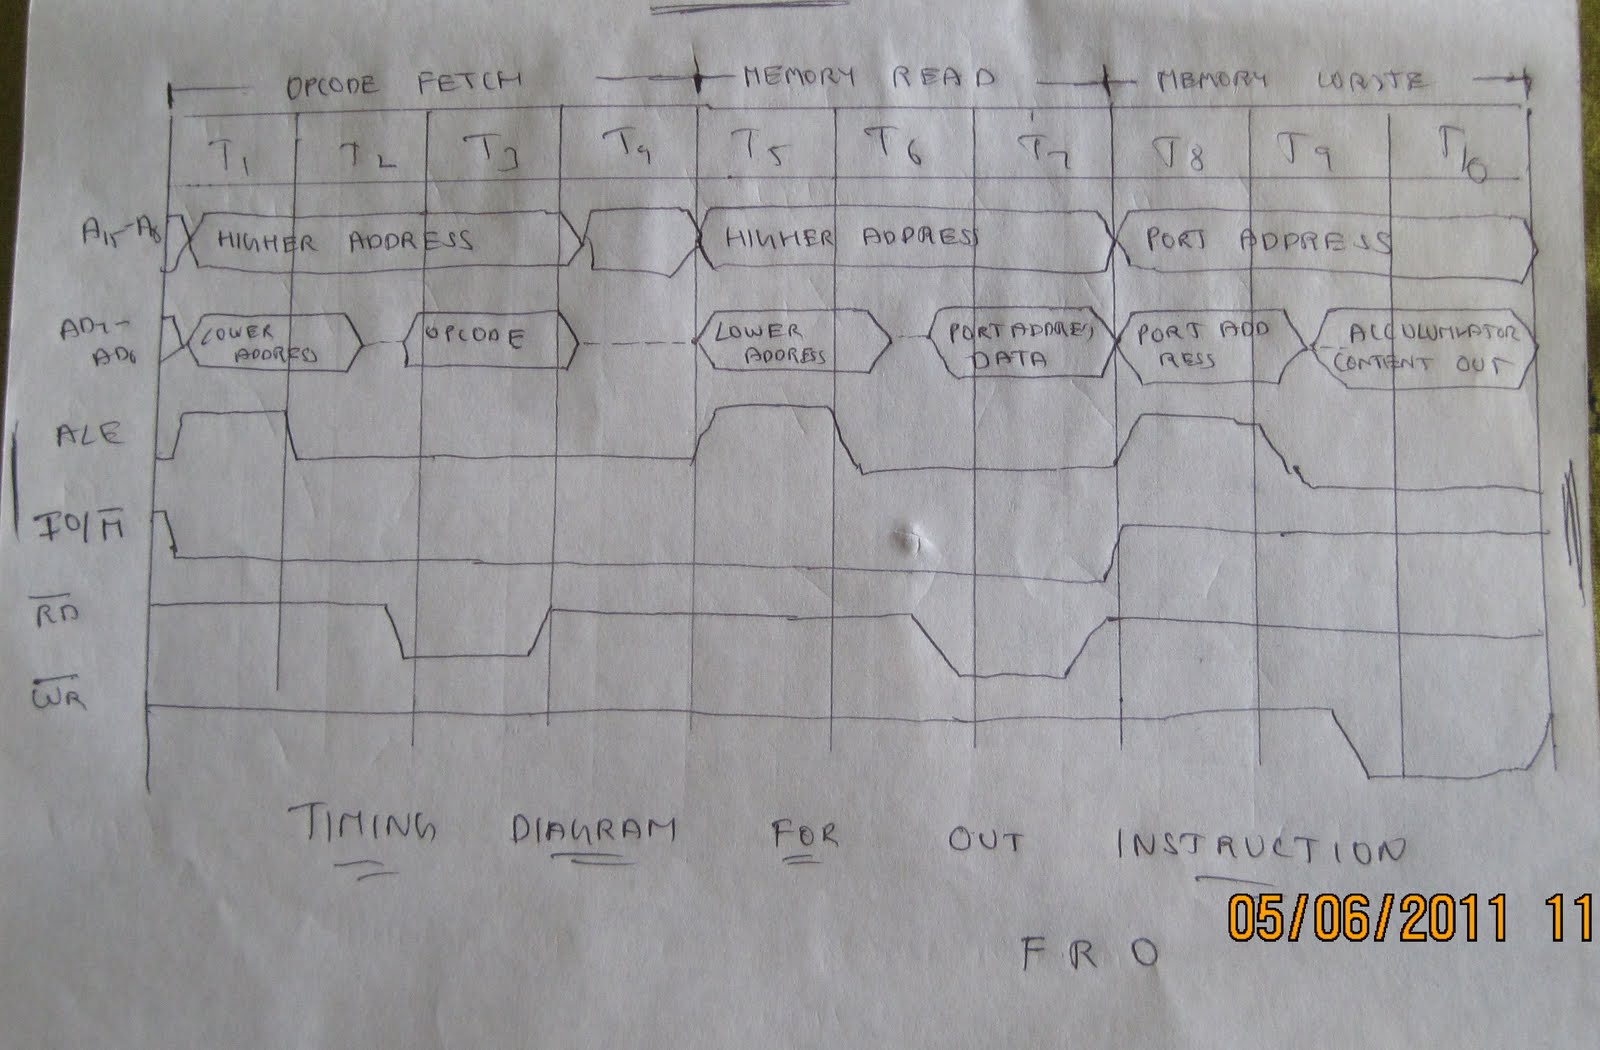 Architecture Of 8085 Microprocessor With Block Diagram Pdf Wiring For 5 Pin Trailer Plug And Microcontroller Timing Out